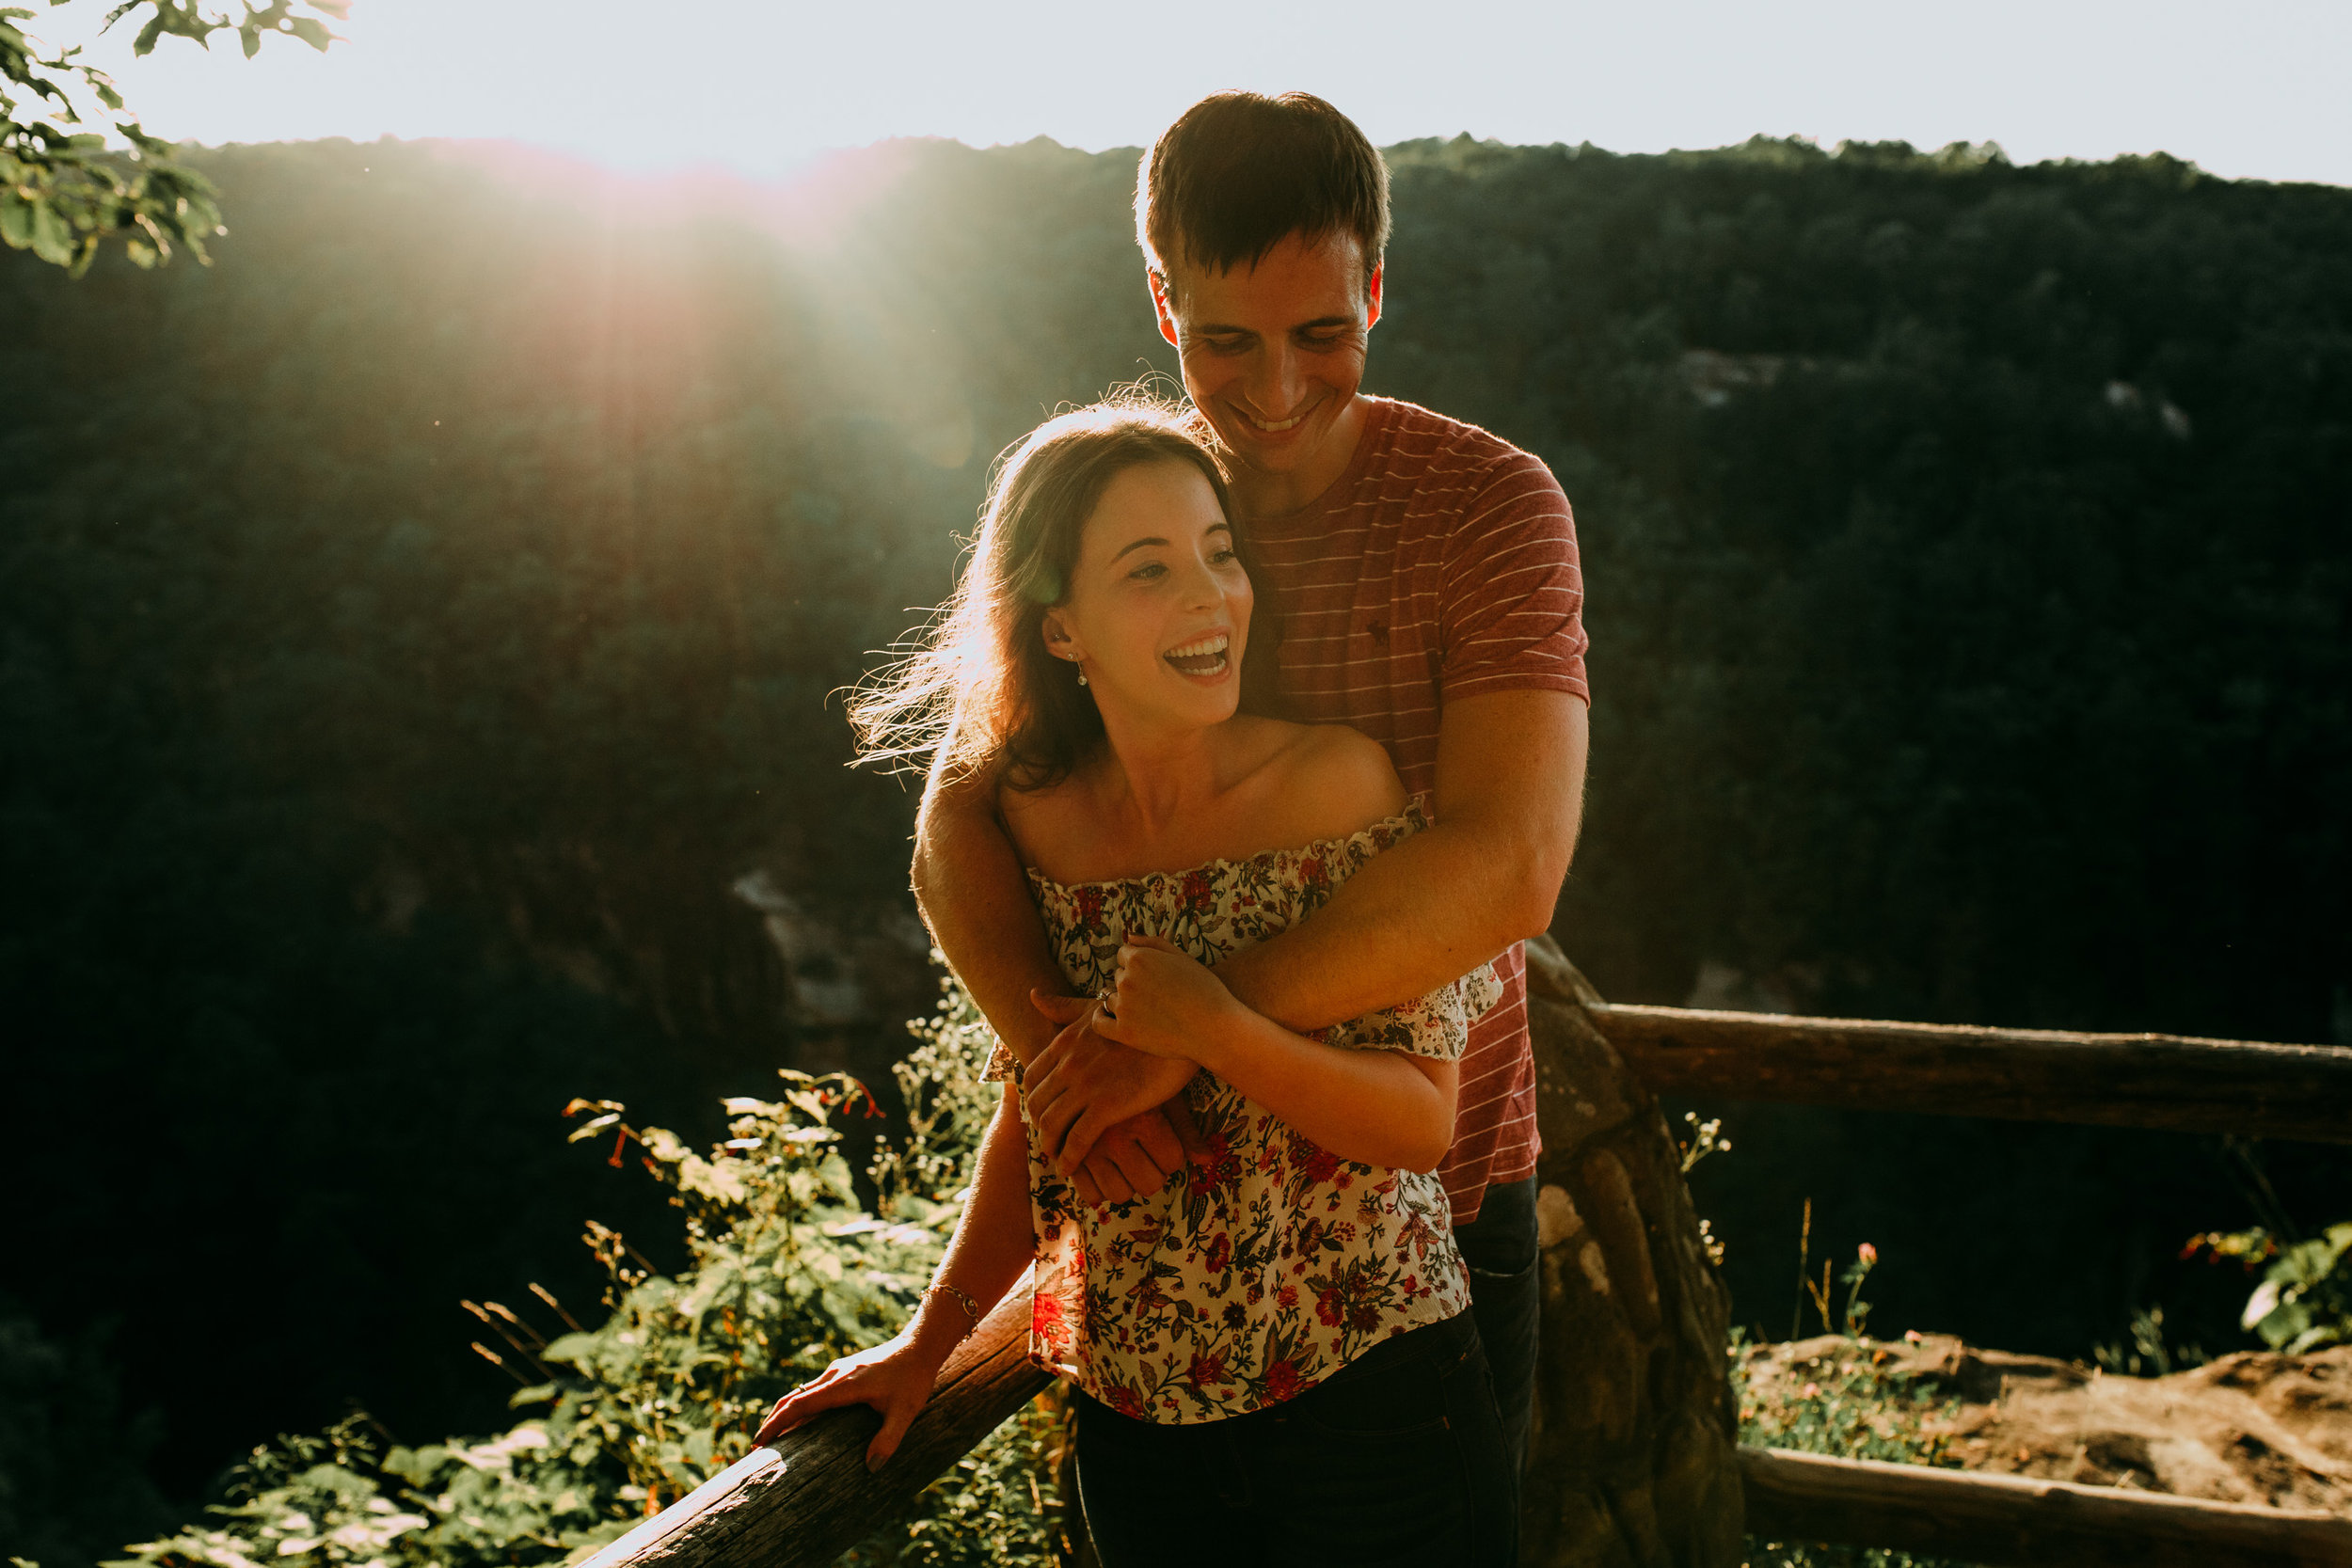 byron + kasey - Cloudland canyon state park - Rising fawn, georgia